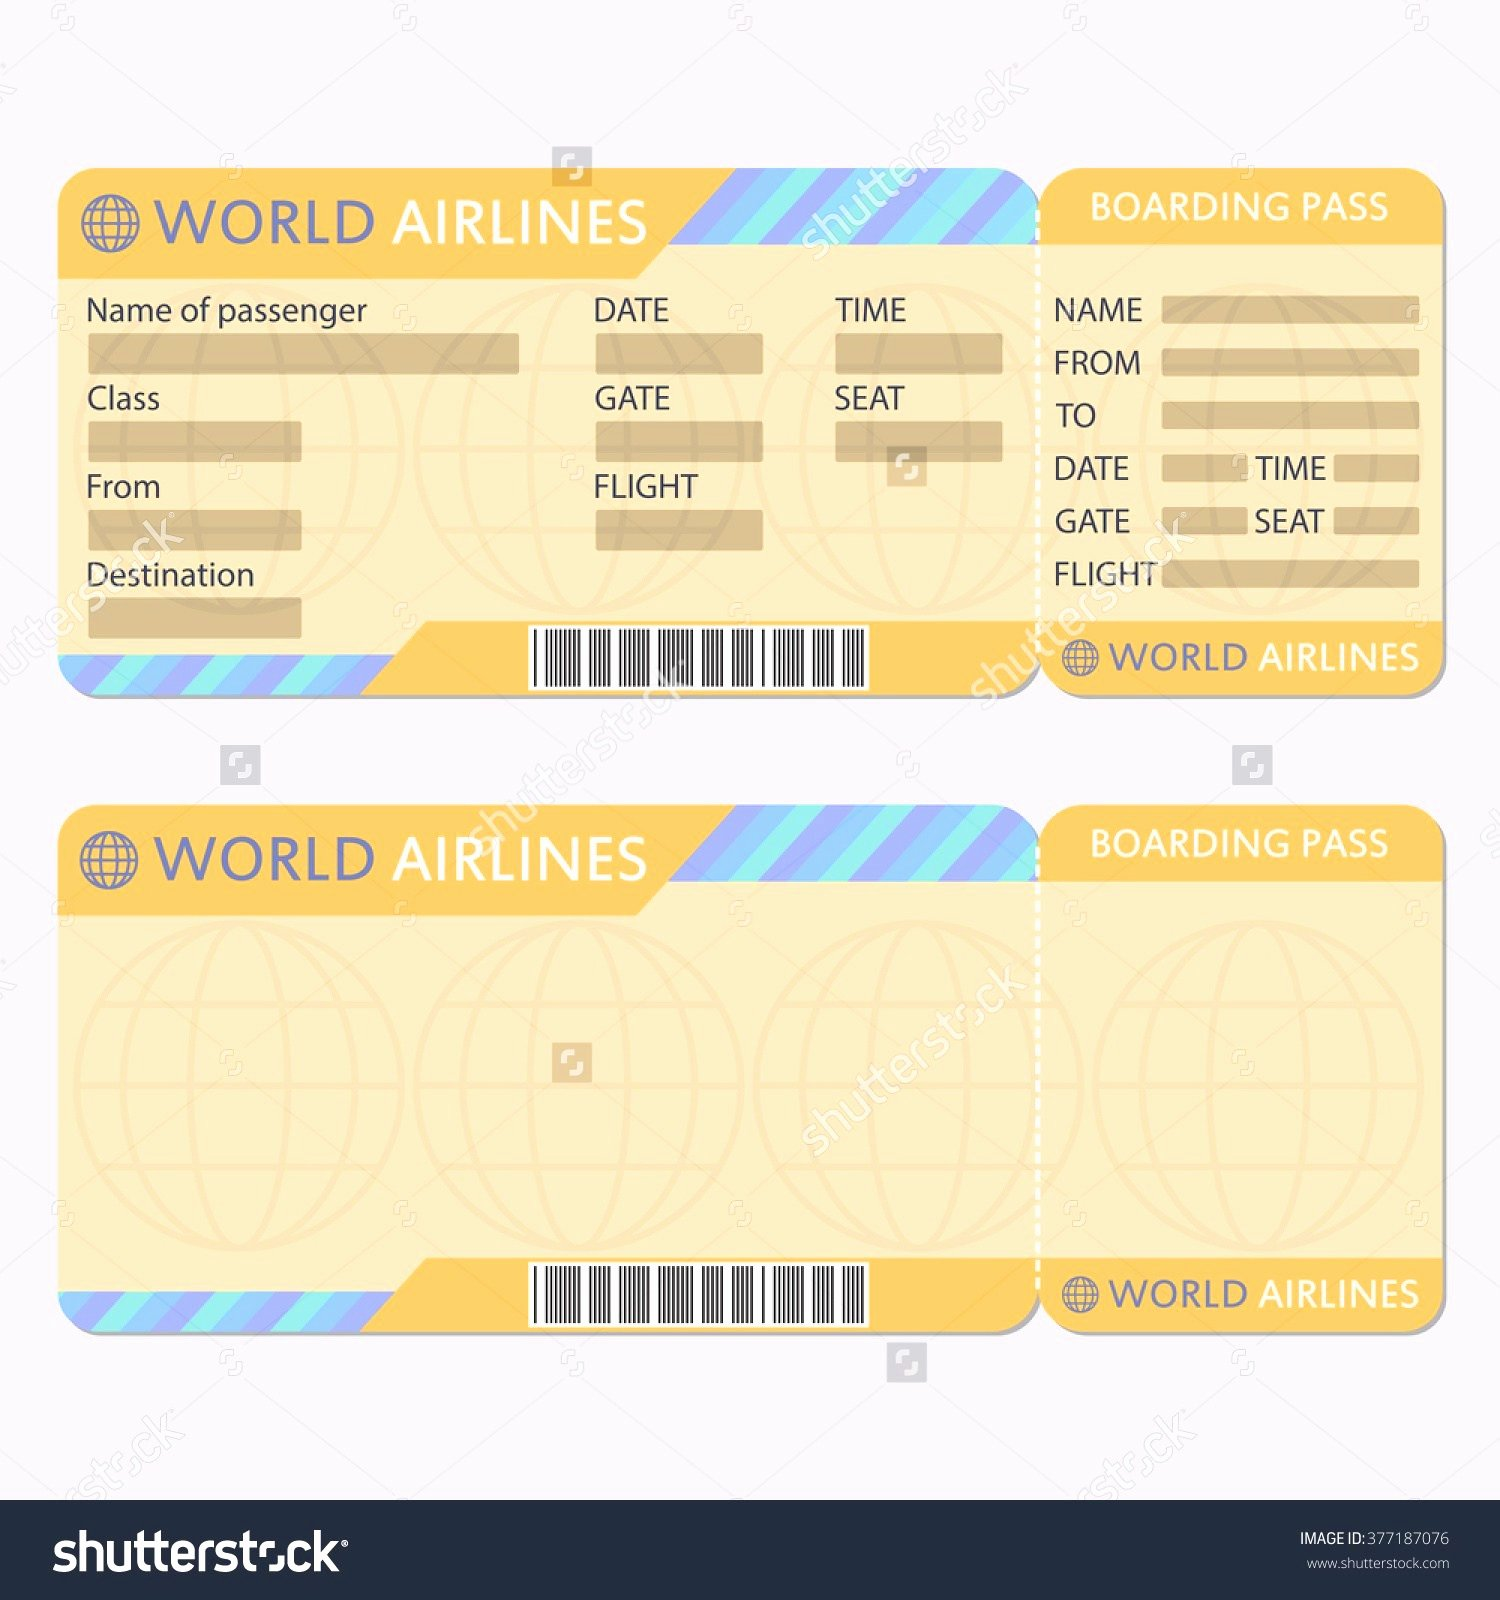 Fake Boarding Pass Template Beautiful Fake Airline Ticket Maker Portablegasgrillweber